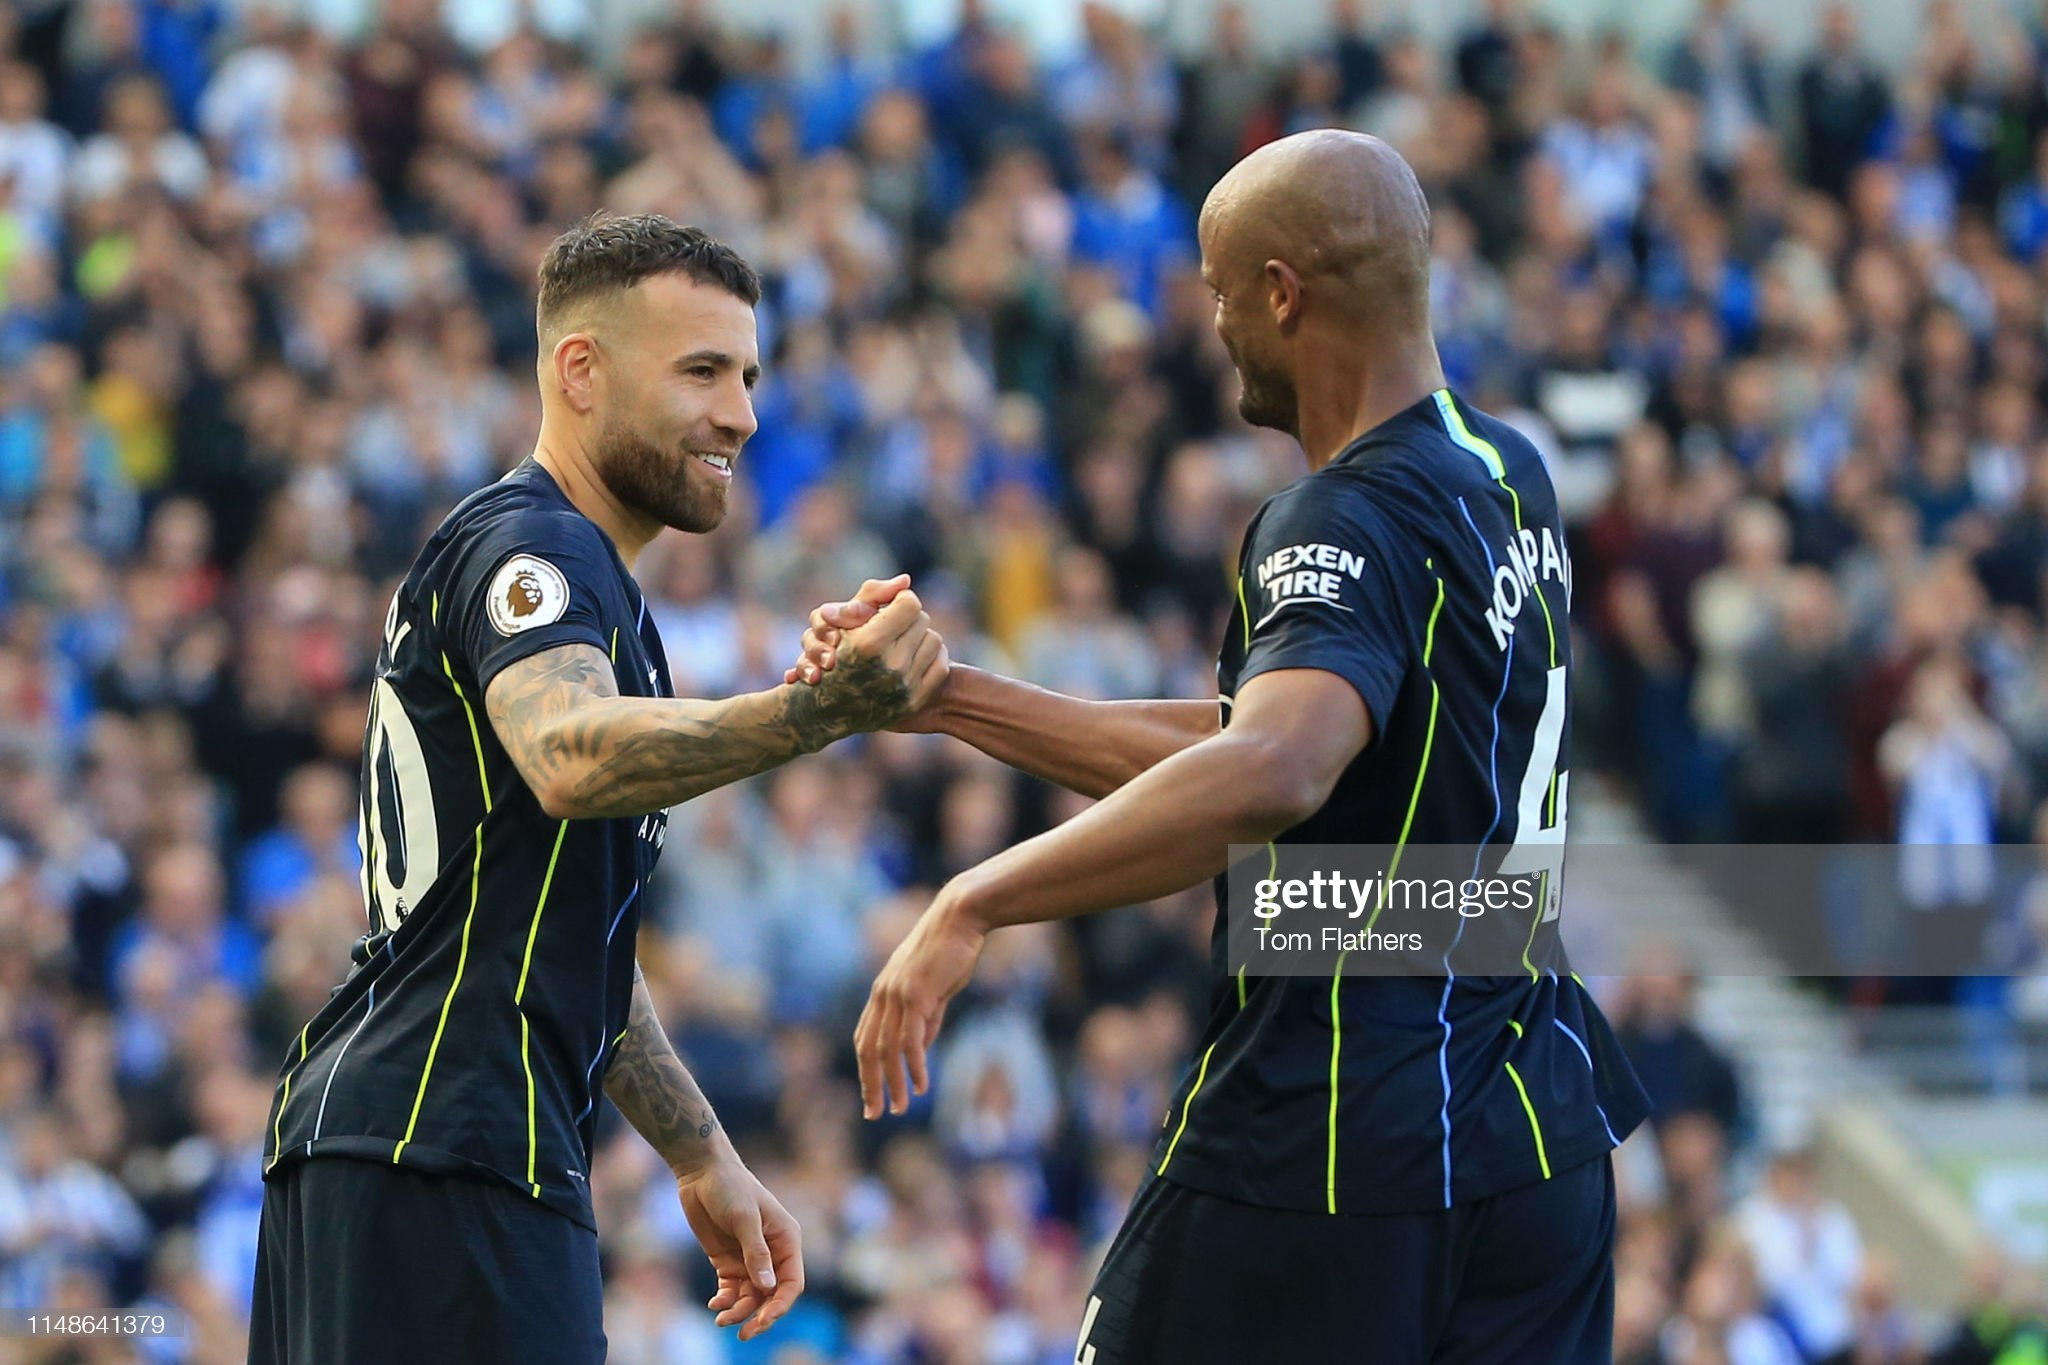 https://media.gettyimages.com/photos/vincent-kompany-of-manchester-city-shakes-hands-with-nicolas-otamendi-picture-id1148641379?s=2048x2048